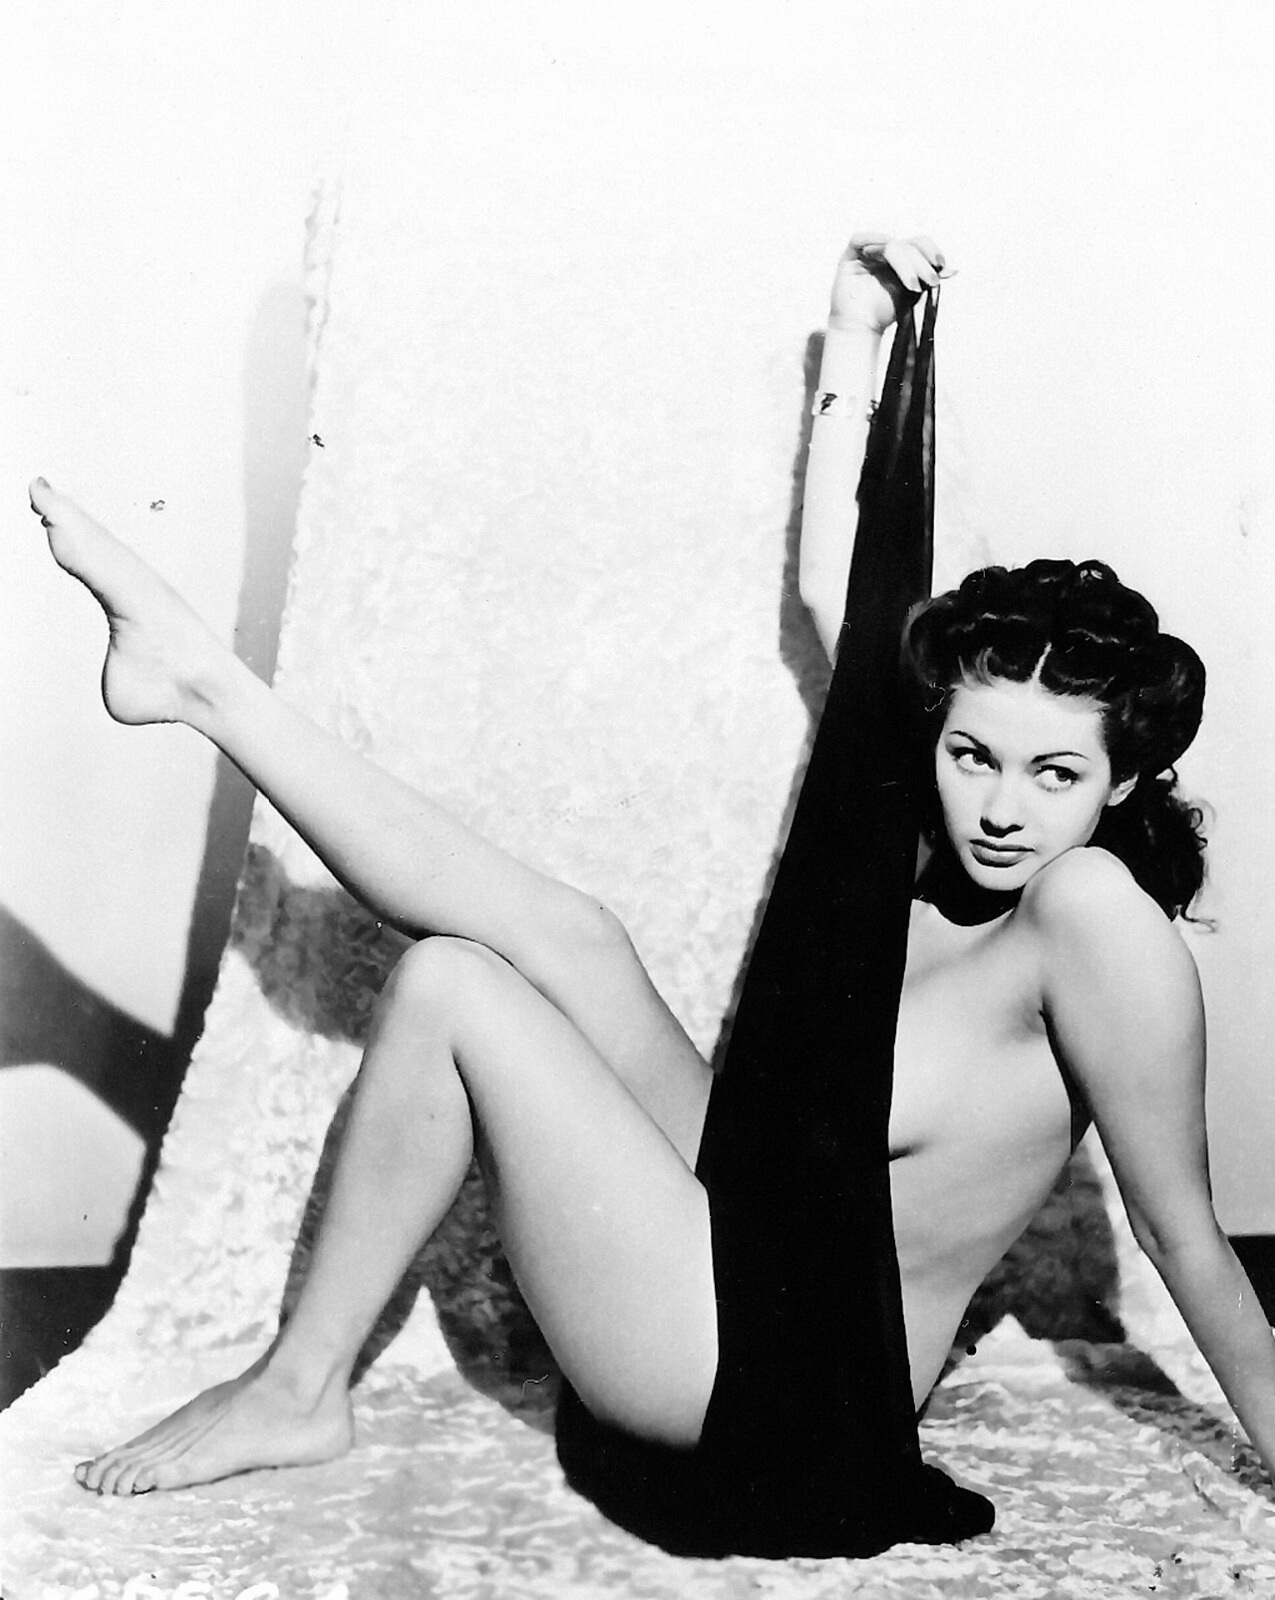 Yvonne De Carlo Tits : yvonne, carlo, Photos, Yvonne, Carlo, Forget, Girlfriend